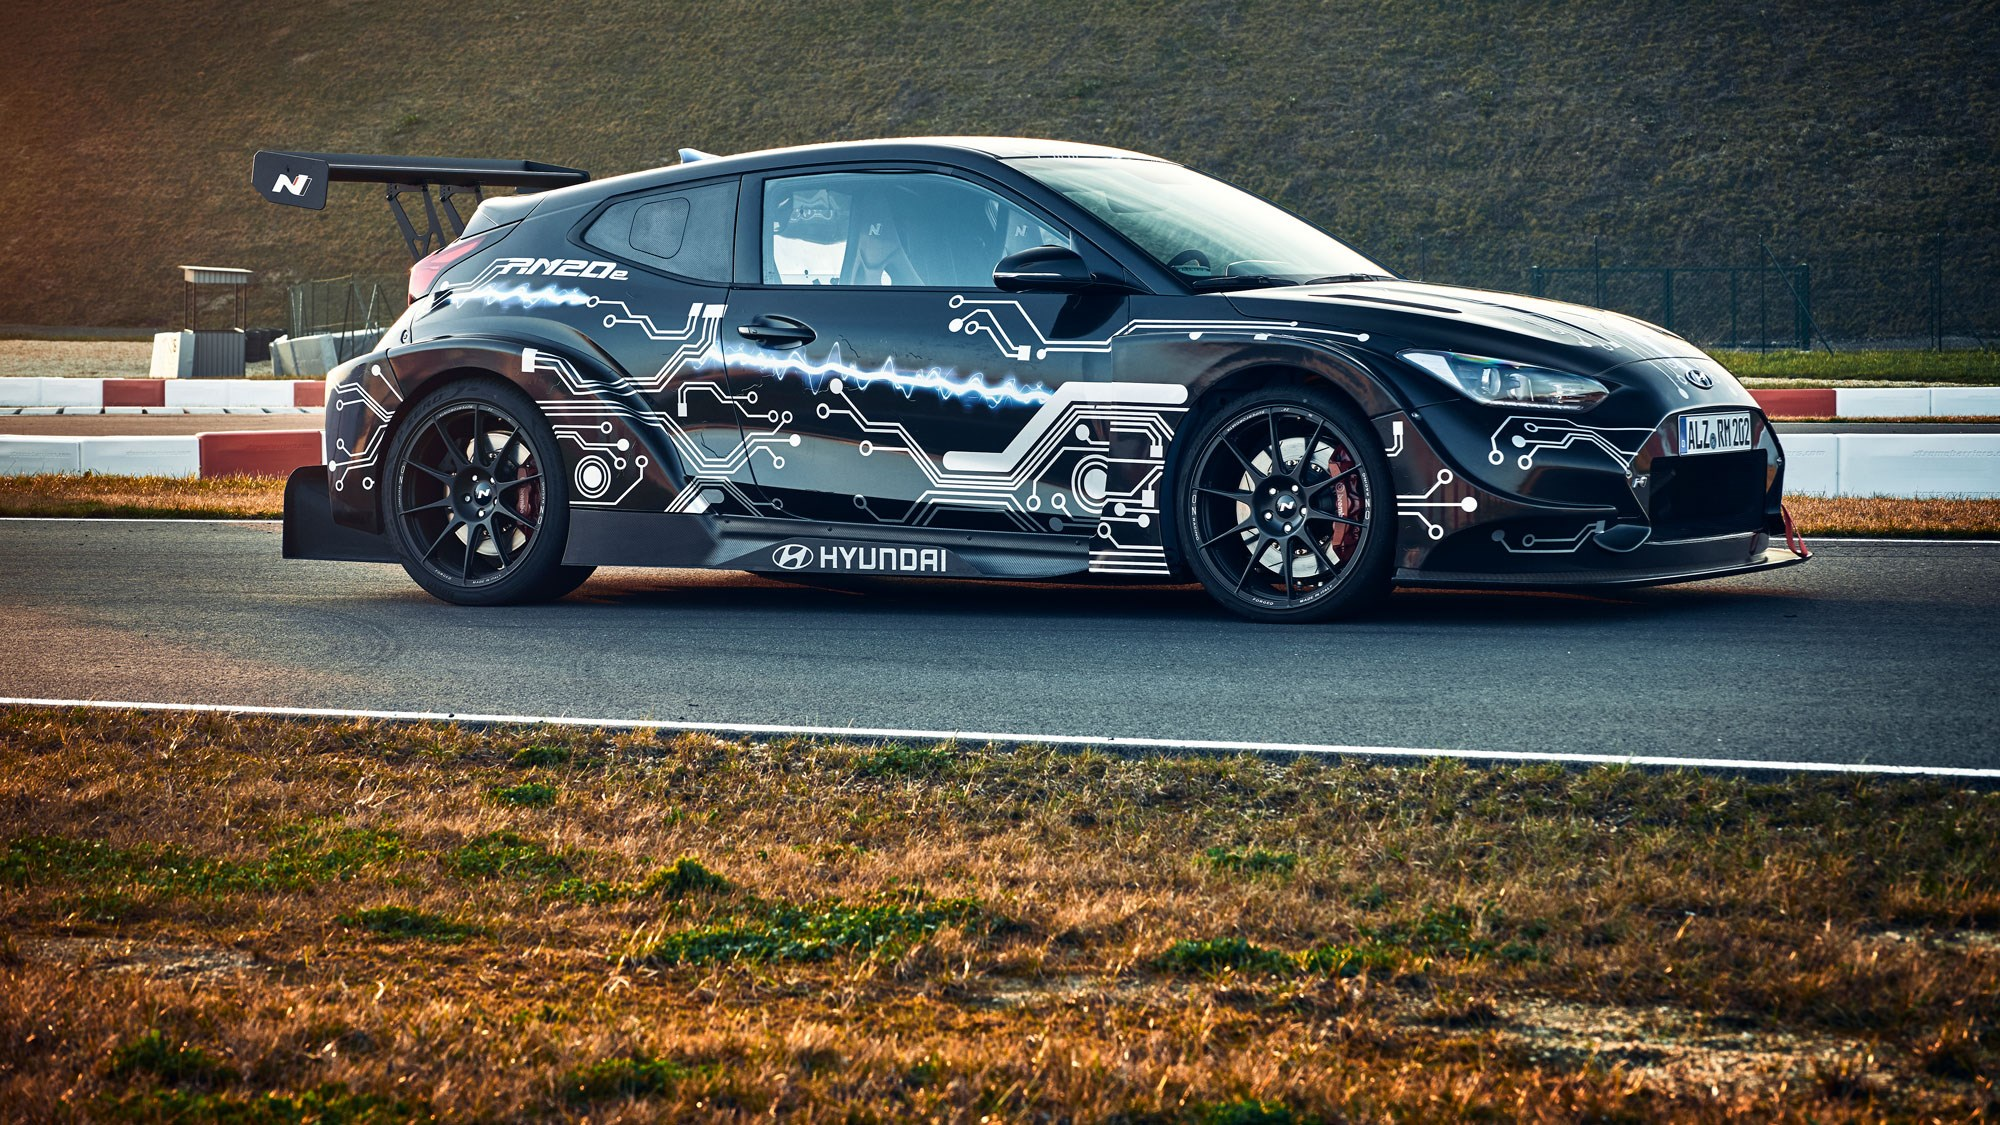 Hyundai's RM20e Prototype Is A 799 HP Electric Sports Car